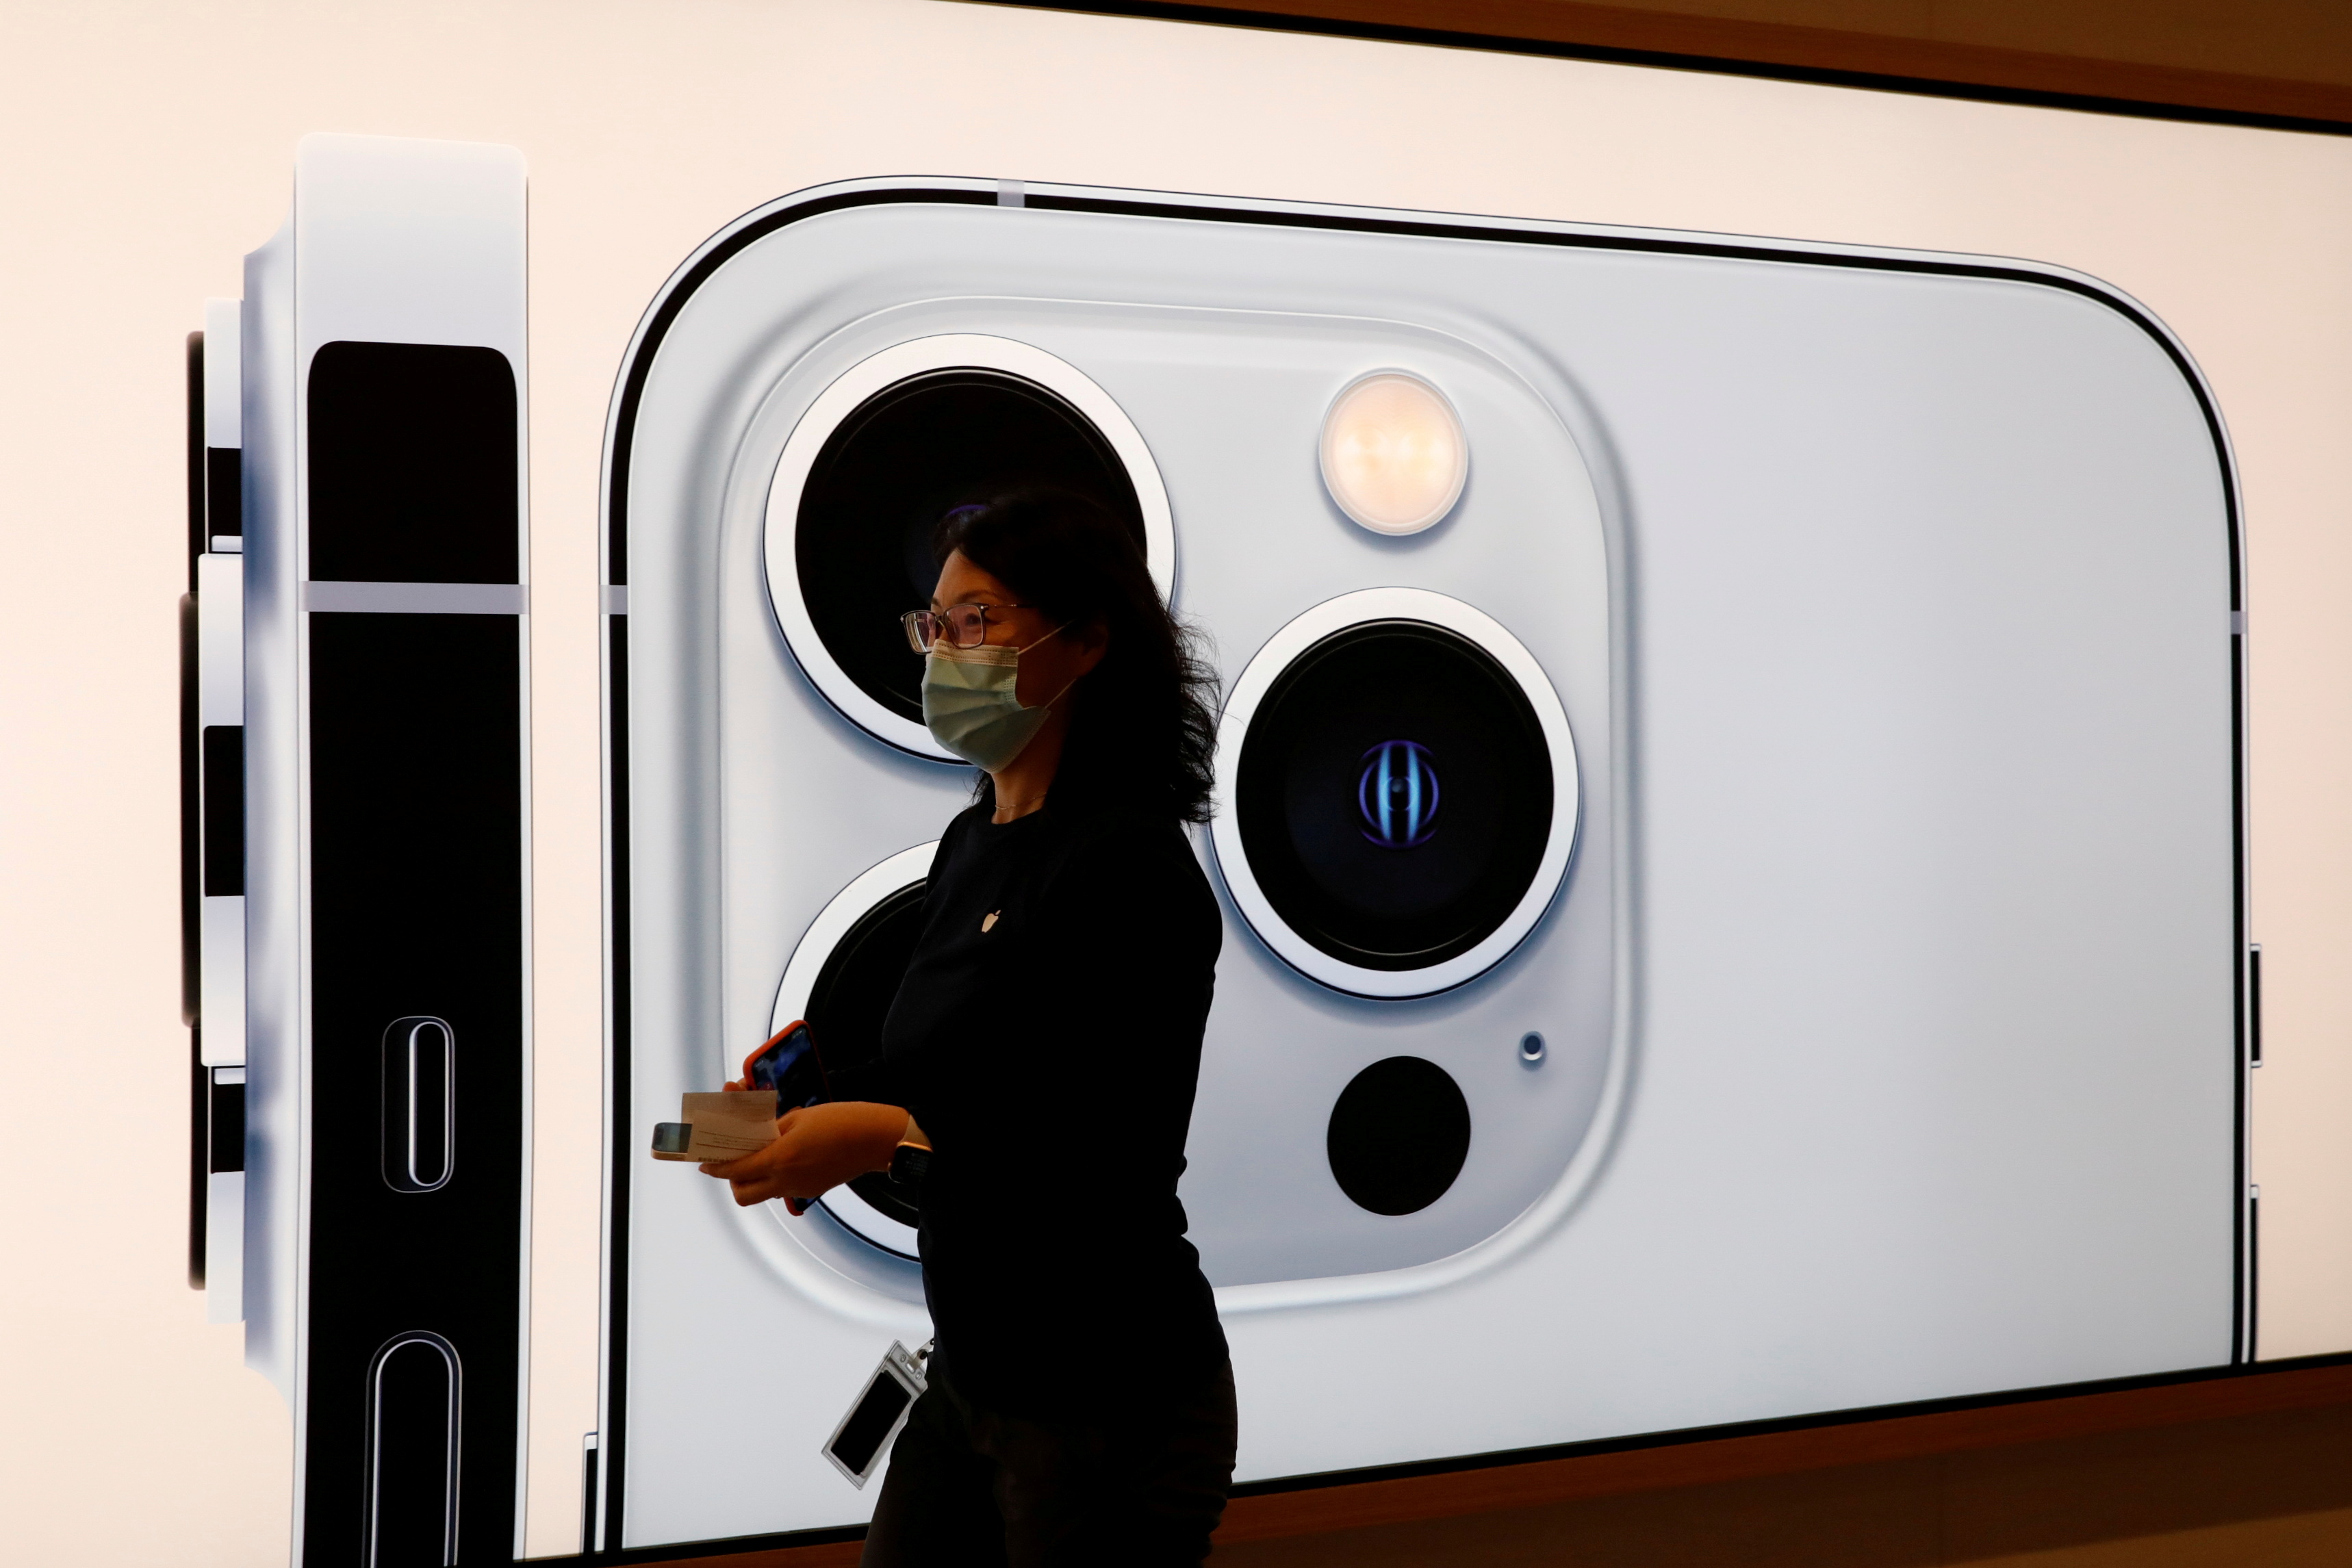 An Apple employee wearing a face mask walks past an image of an iPhone 13 Pro at an Apple Store on the day the new Apple iPhone 13 series goes on sale, in Beijing, China, September 24, 2021. REUTERS/Carlos Garcia Rawlins/File Photo